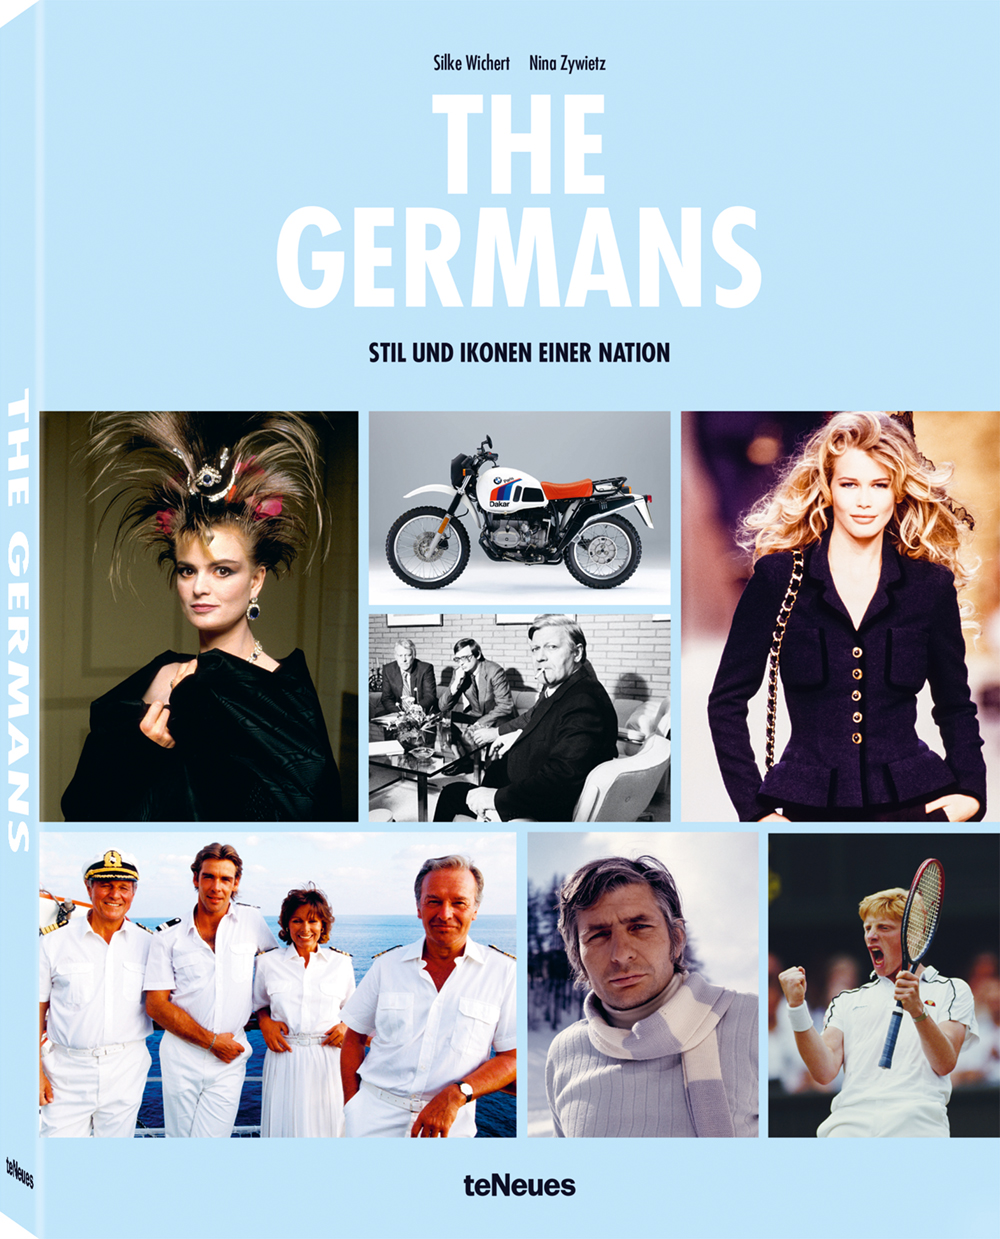 © THE GERMANS - STIL UND IKONEN EINER NATION von Silke Wichert & Nina Zywietz, erschienen bei teNeues, € 39,90,www.teneues.com. Photos © Ron Galella/Getty Images; © BMW AG 2017; © Ulrich Baumgarten/Getty Images; © Victor VIRGILE/Getty Images; © Leo Mason/Popperfoto/Getty Images; © Rainer Binder/Getty Images; © Peter Bischoff/Getty Images